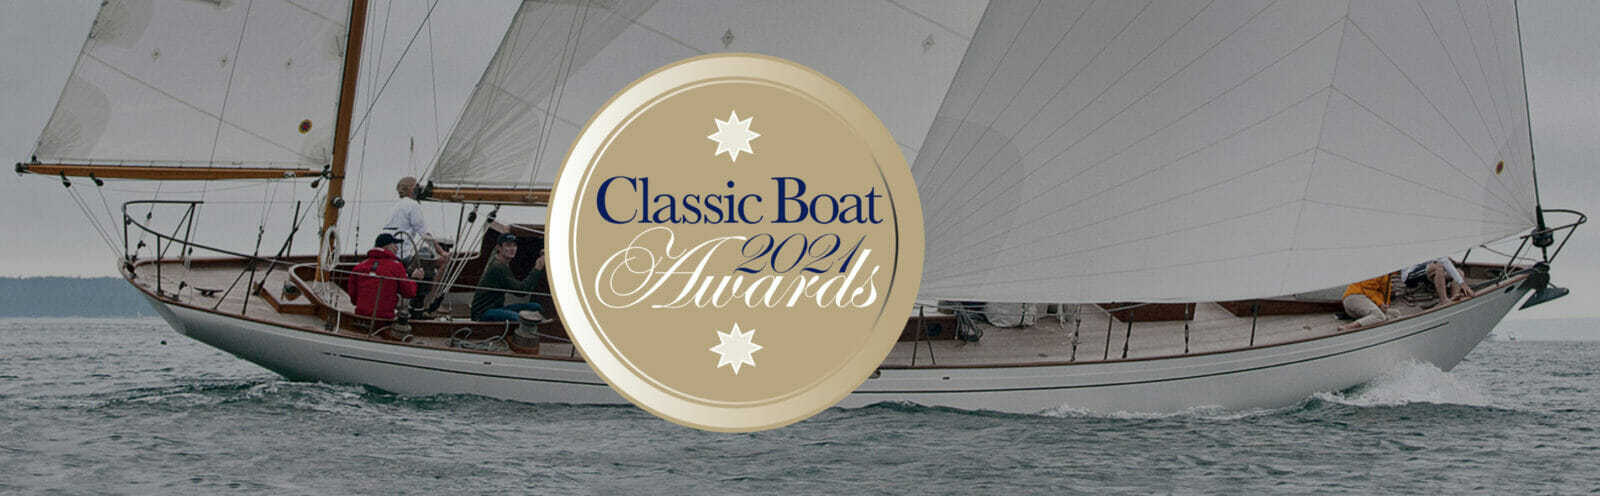 Mike Dixon and A1 nominated for Classic Boat Award - Vote Now!